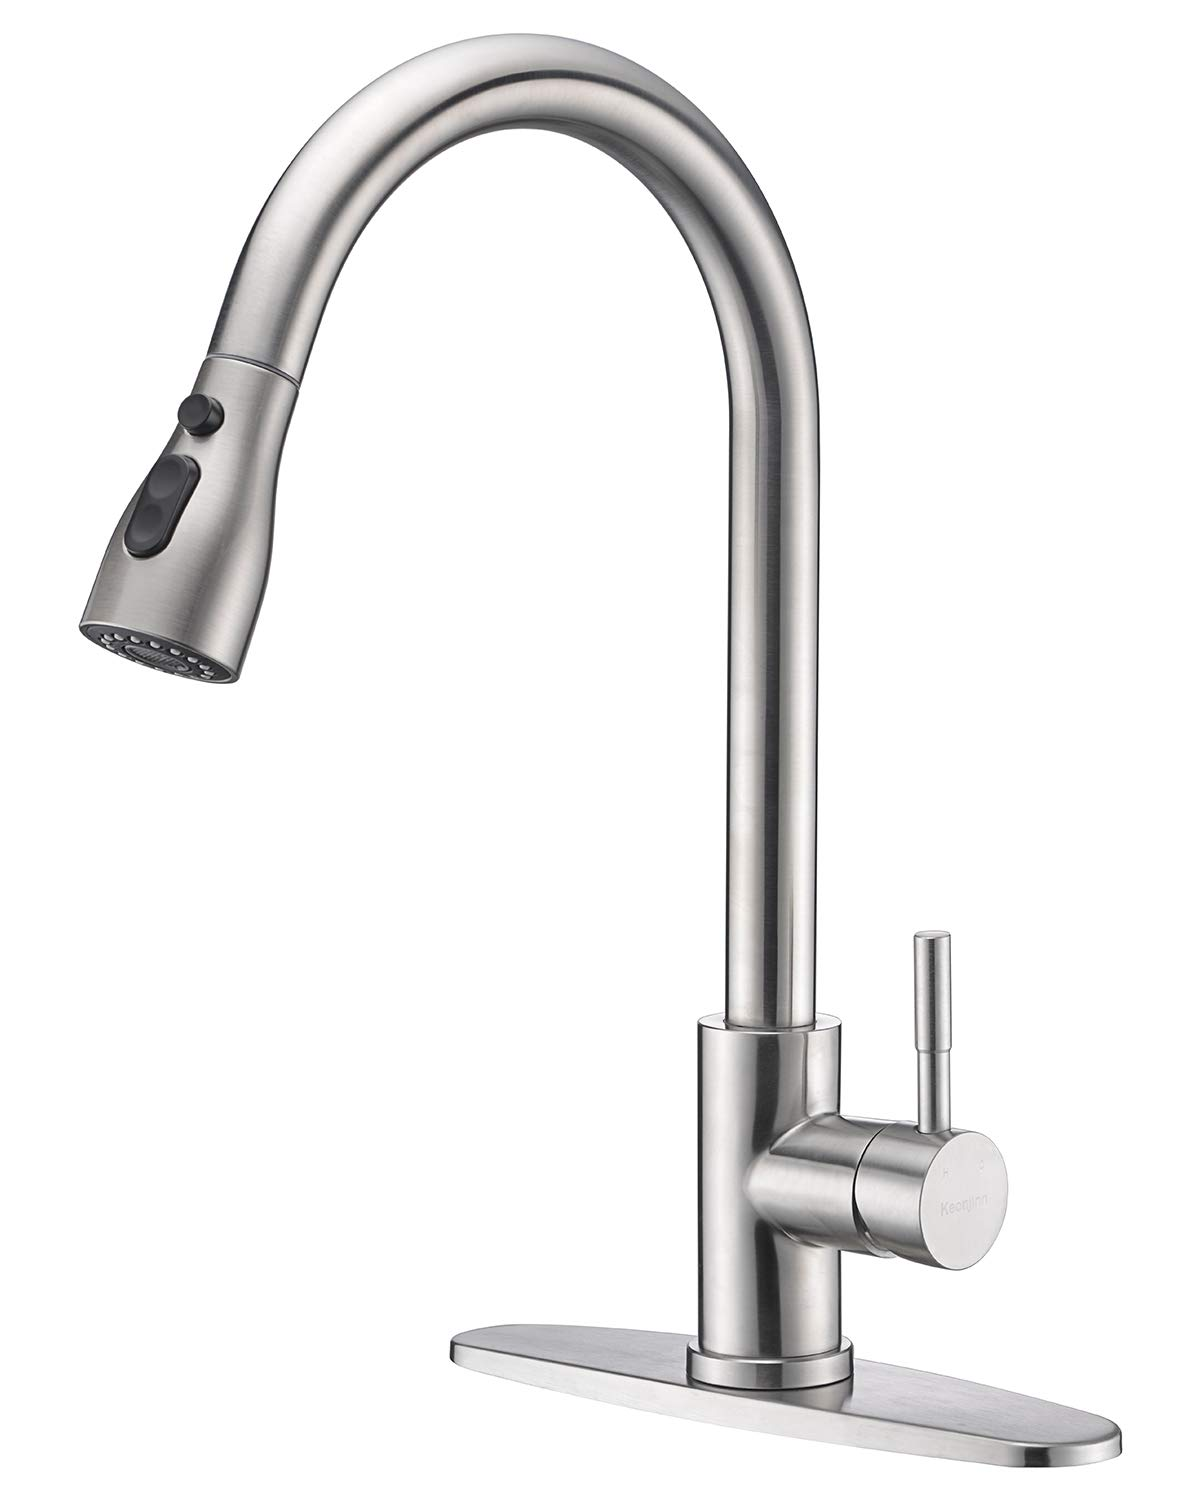 Keonjinn High Arc Single Handle Pull out Brushed Nickel Kitchen Faucet,Single Level Stainless Steel Kitchen Sink Faucets with Pull down Sprayer